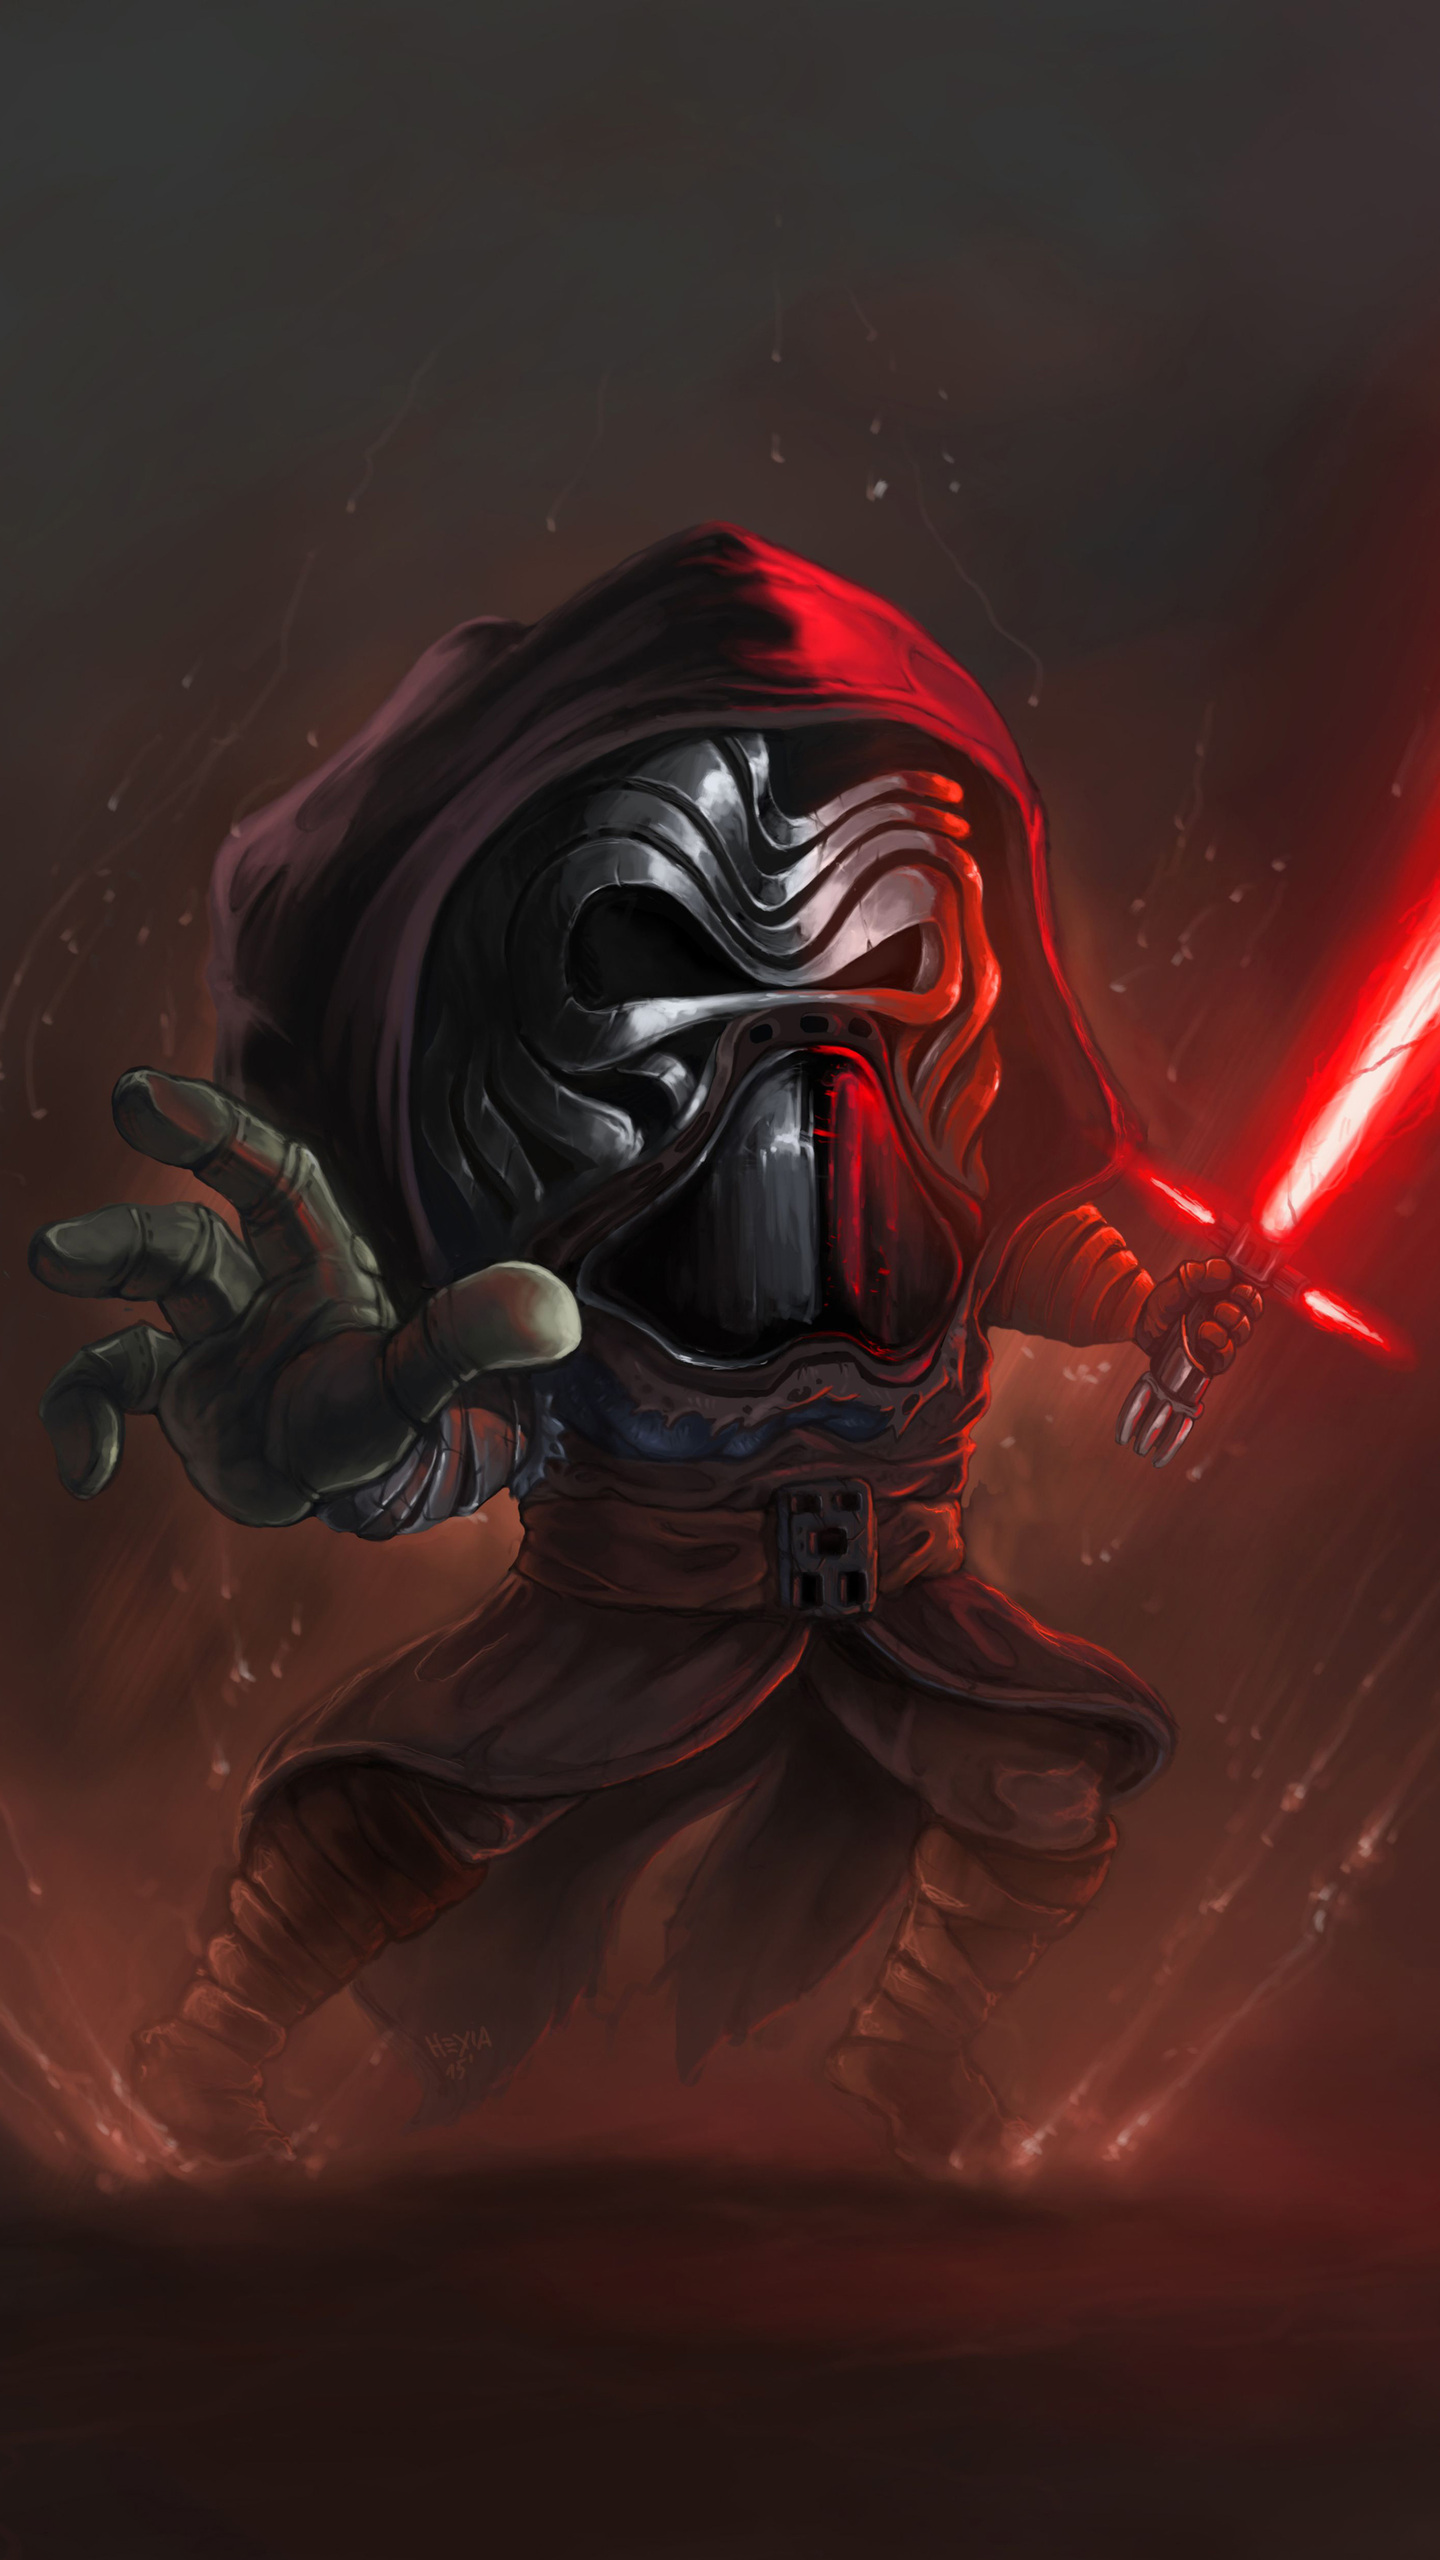 kylo-ren-cartoon-art-1h.jpg